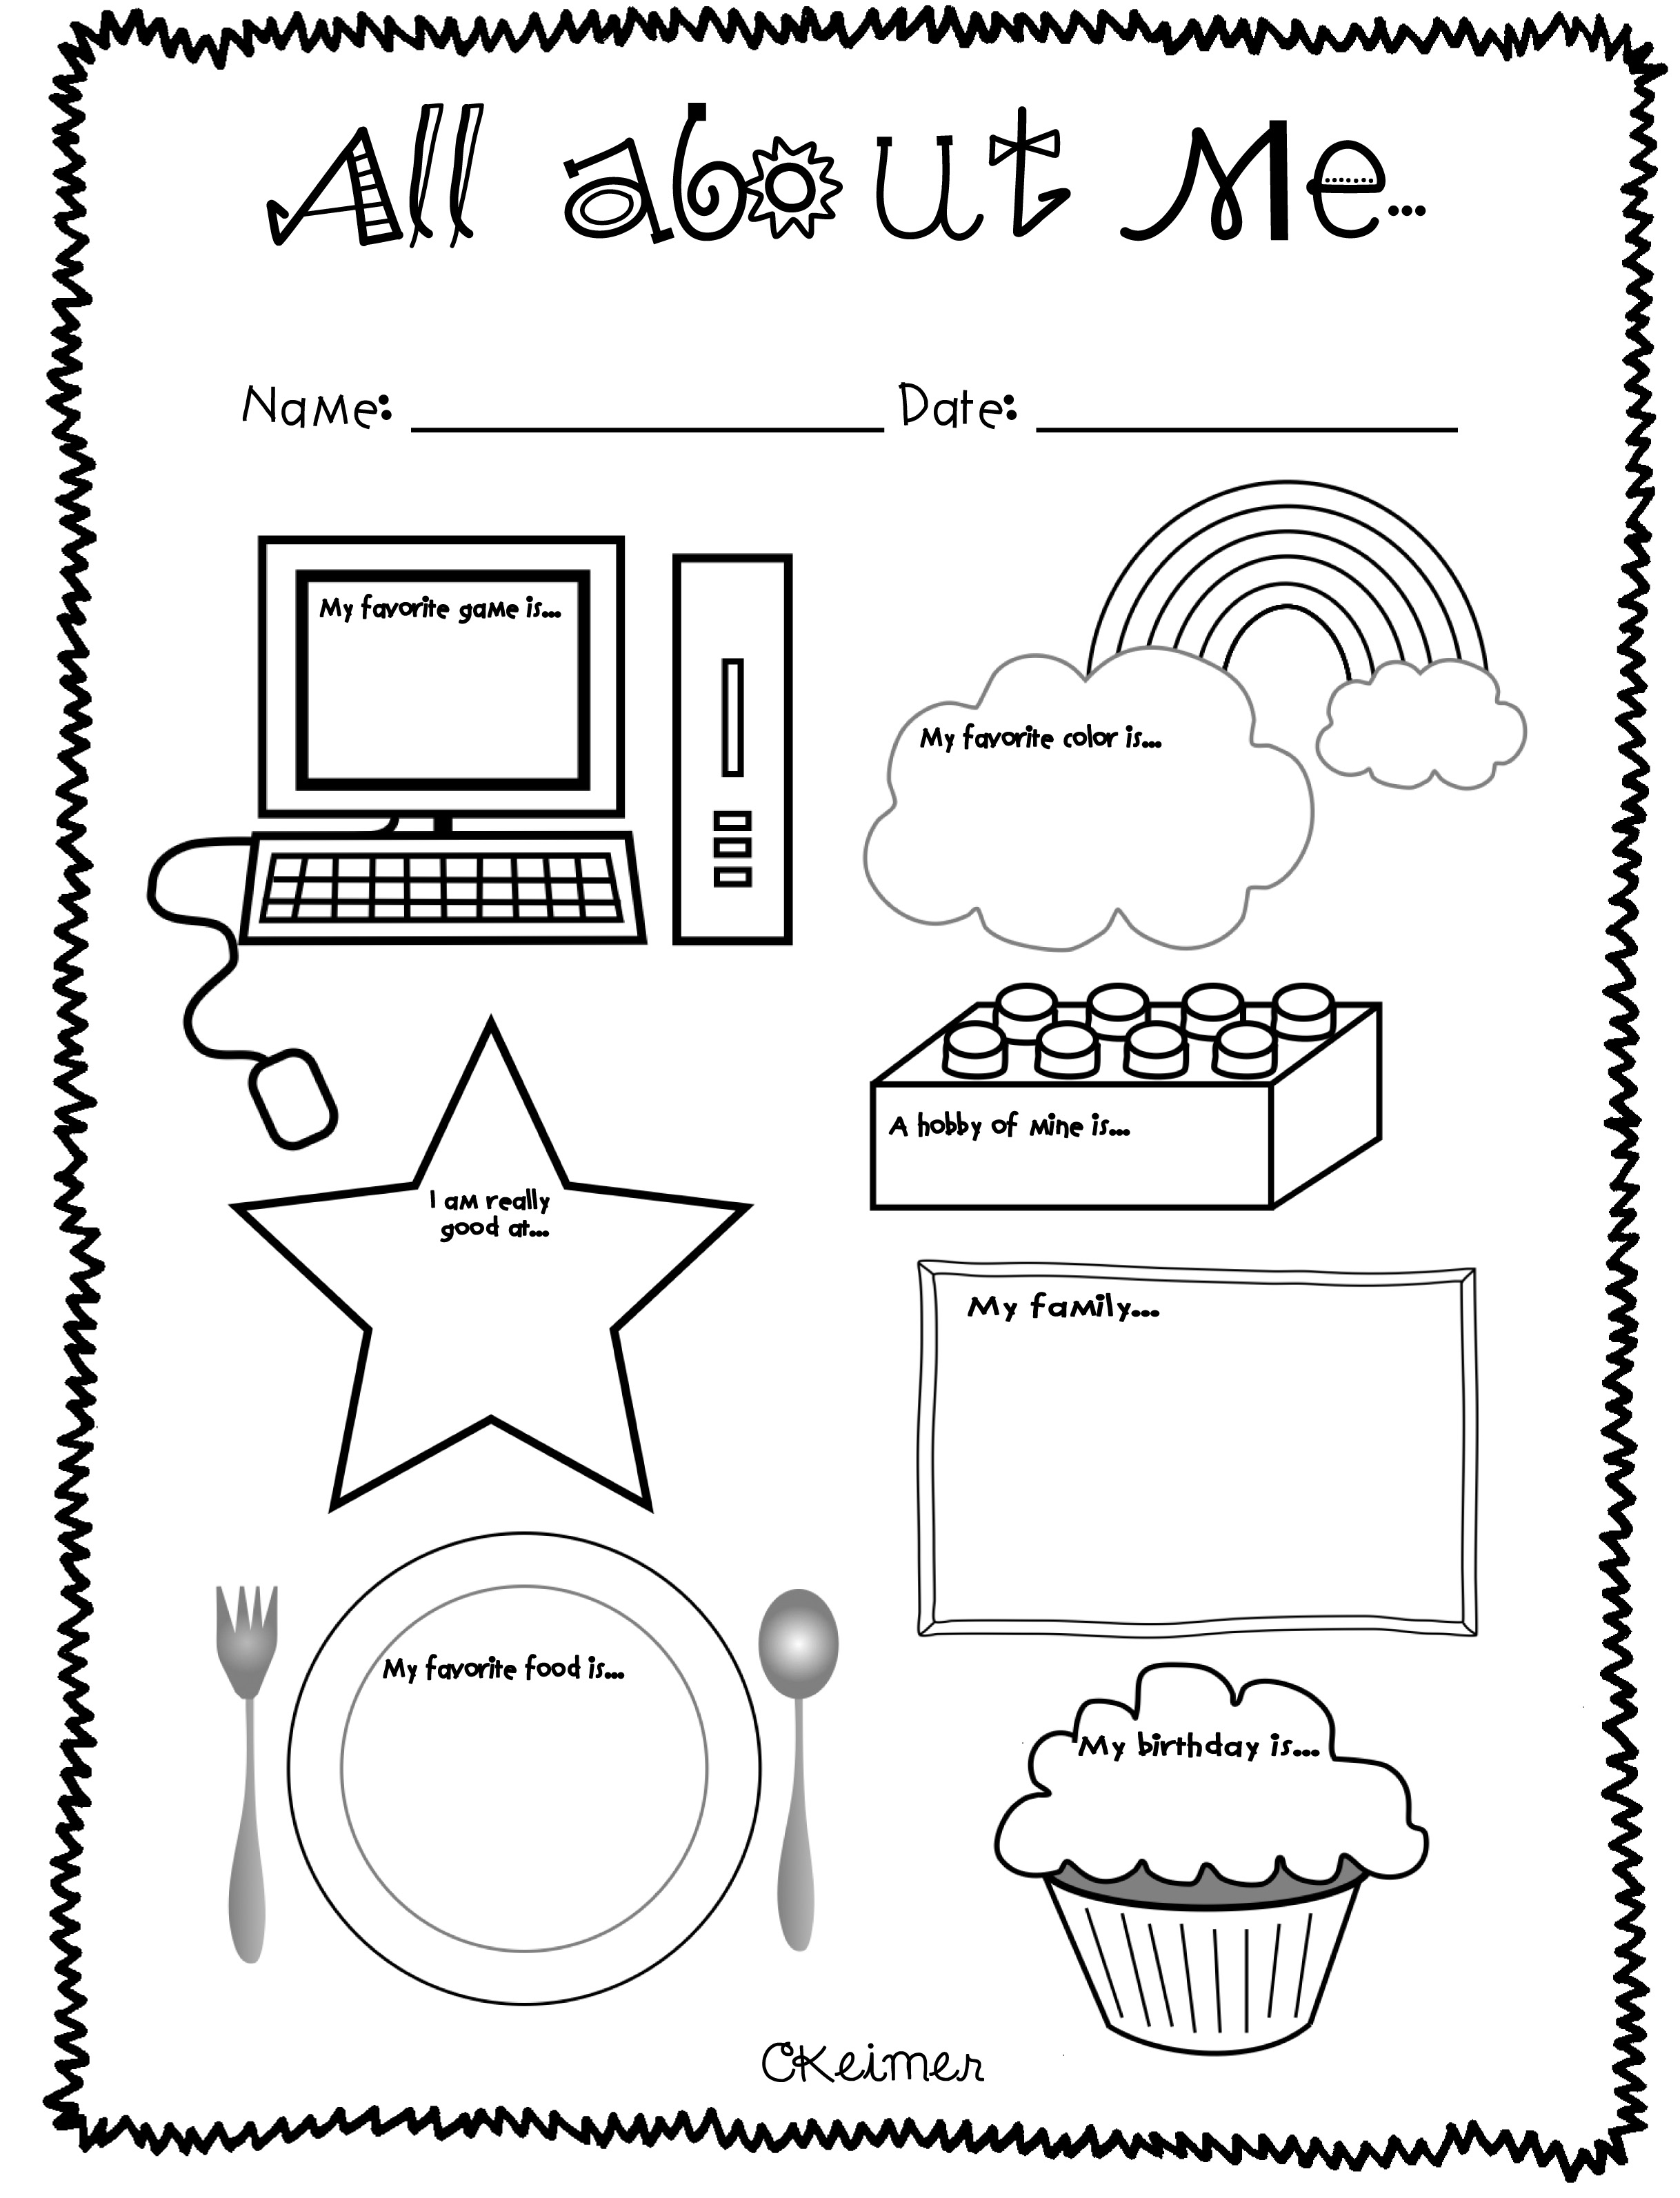 Worksheets All About Me Preschool Worksheets 6 best images of getting to know me printable preschool all about activities